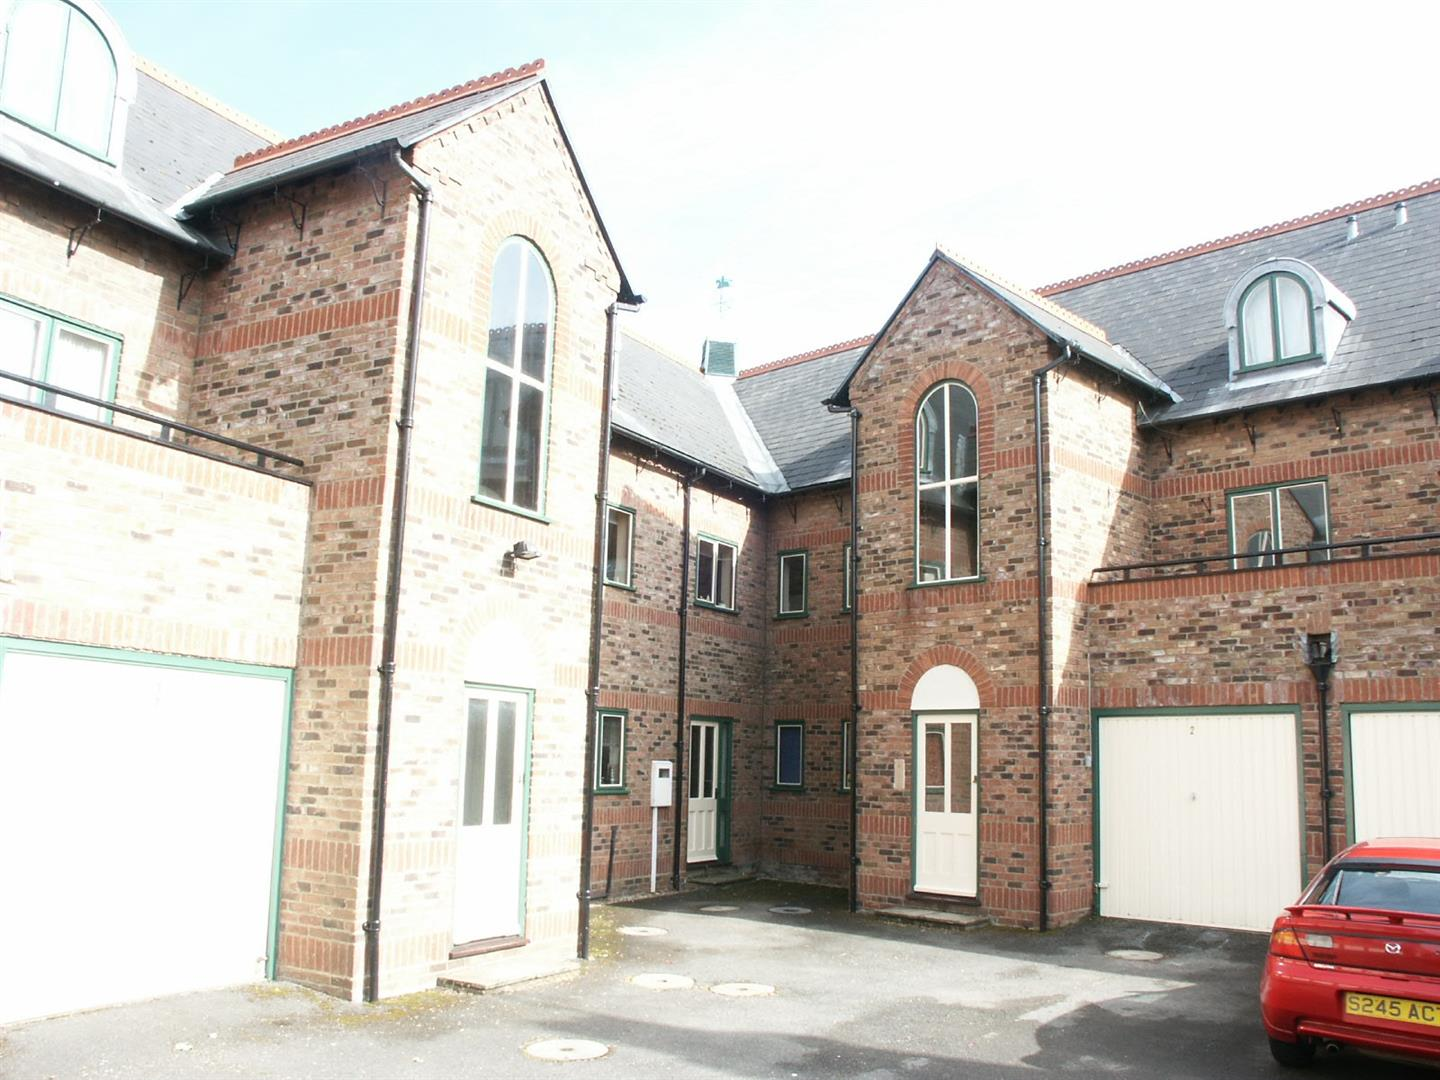 2 bed flat to rent in Spalding, PE12 9RL - Property Image 1